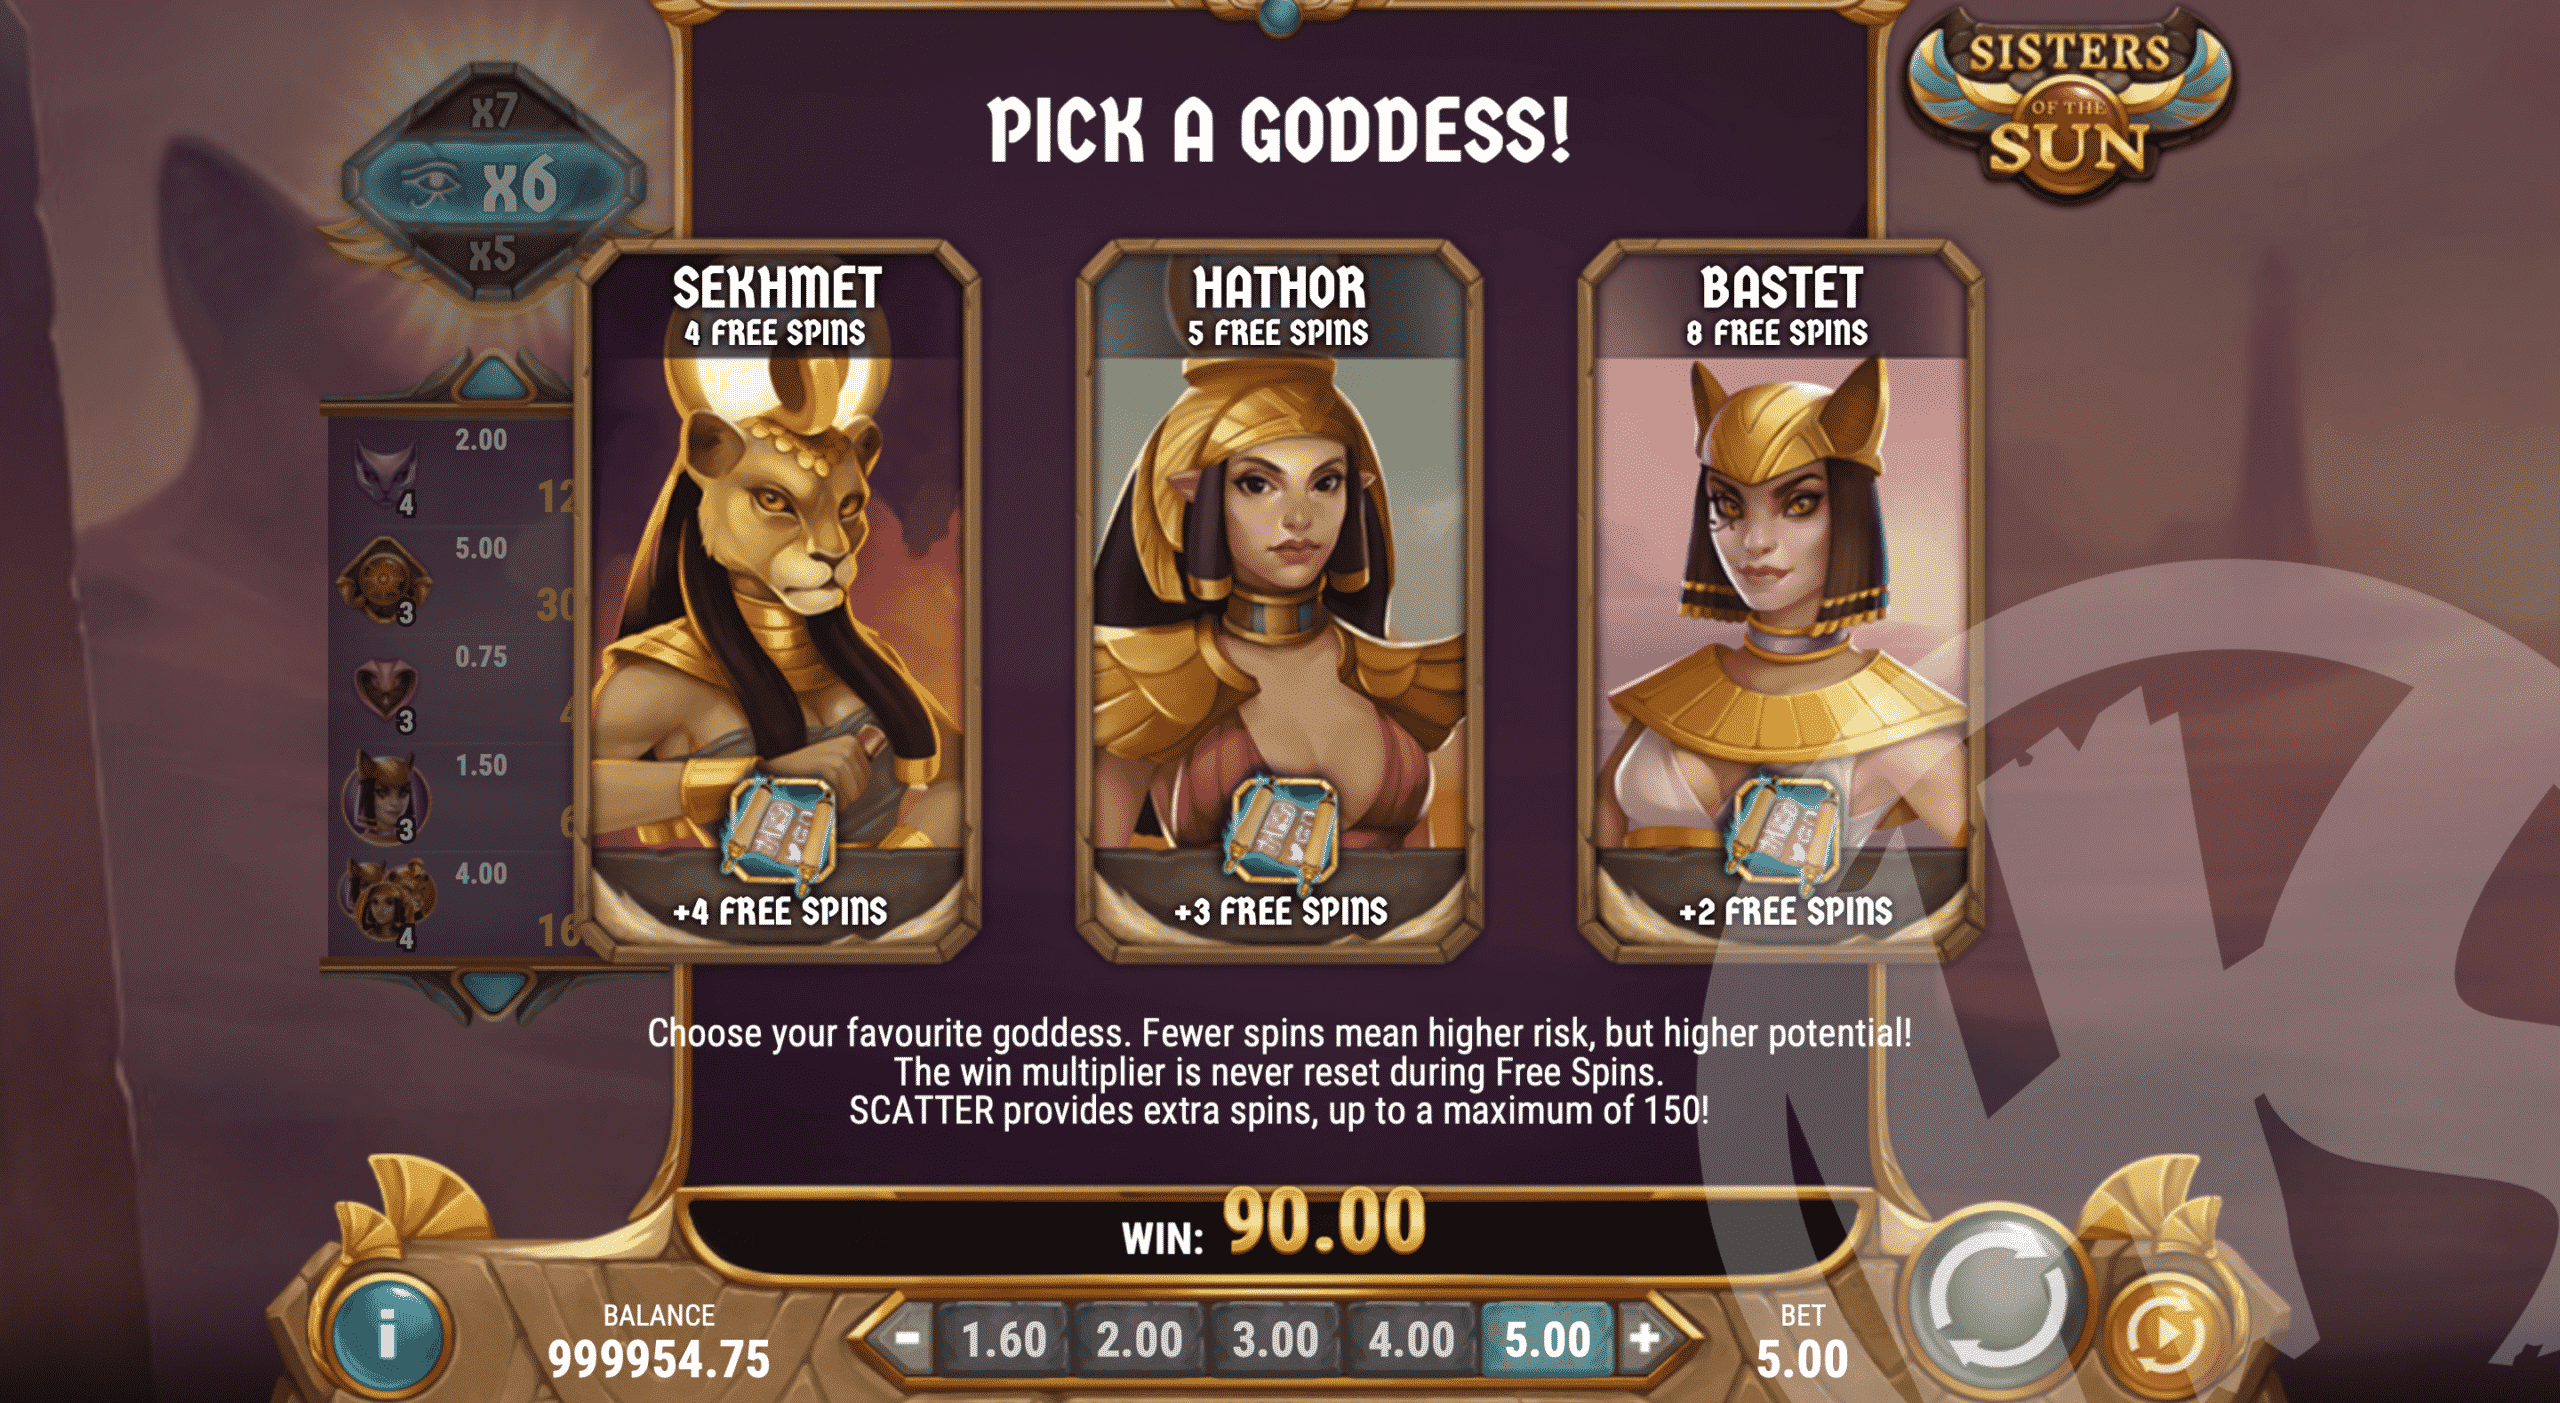 Choose Your Favourite Goddess For The Free Spins Feature